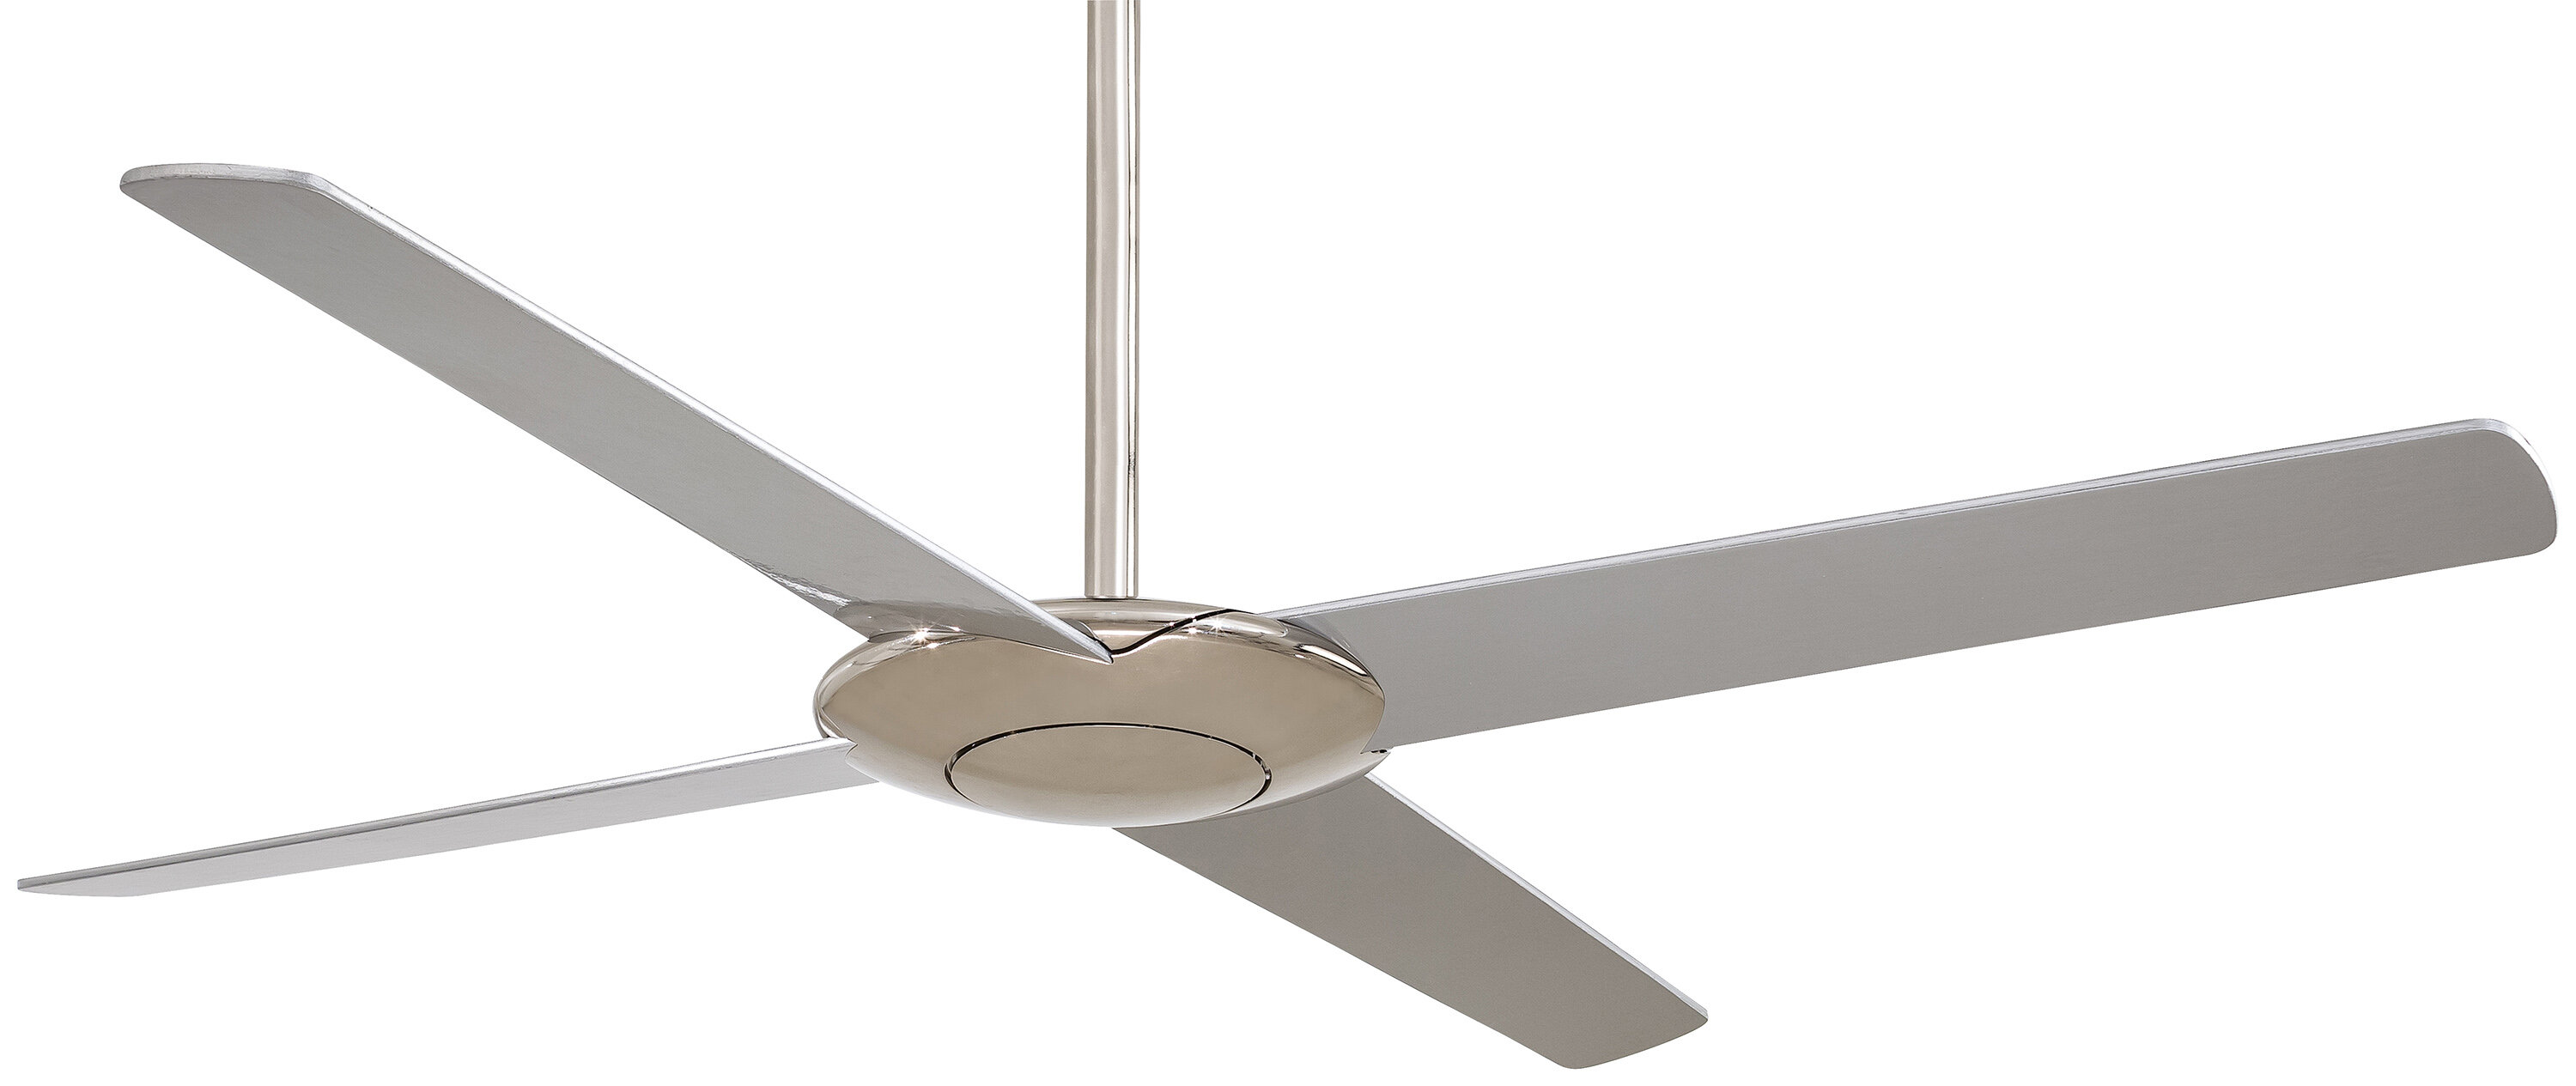 Pancake 4 Blade Ceiling Fan With Remote